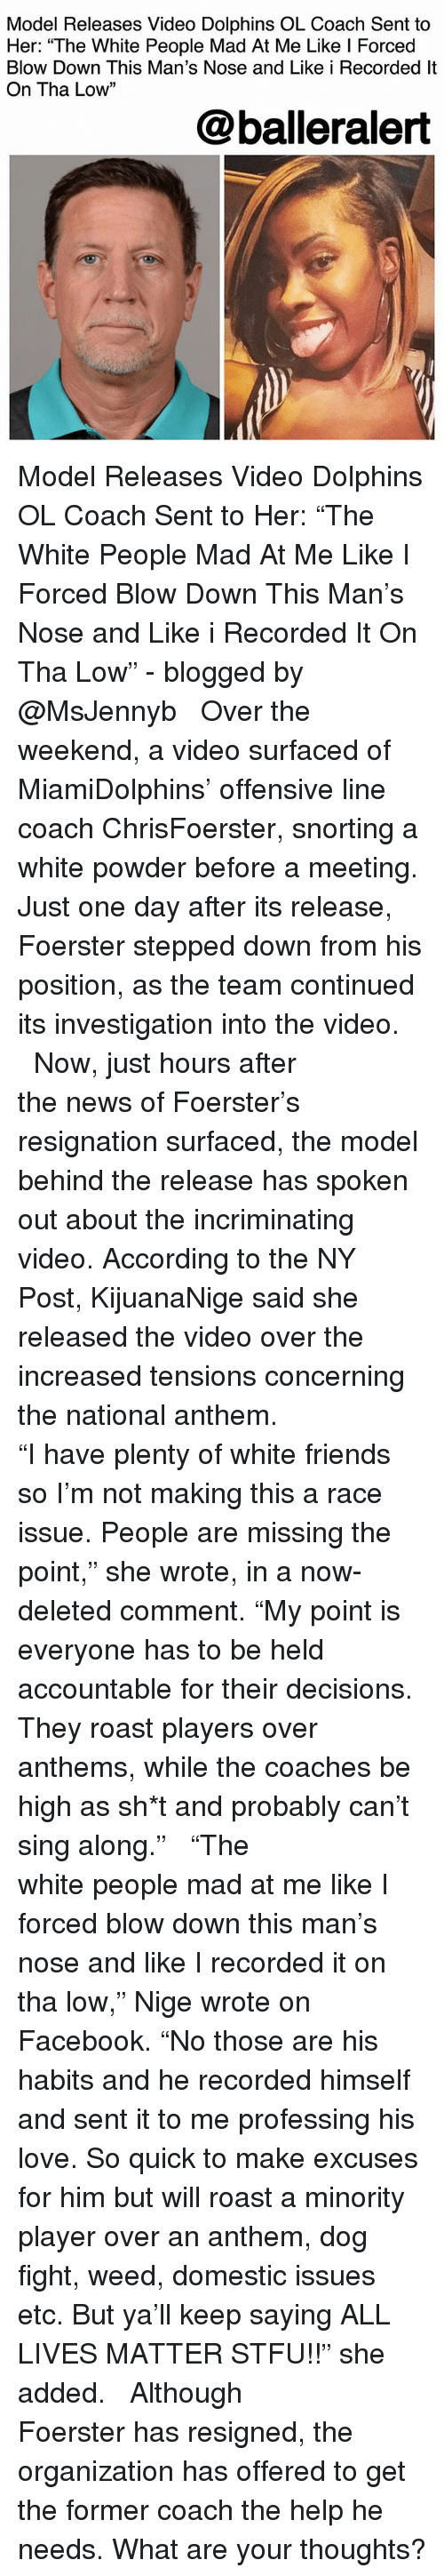 """All Lives Matter, Facebook, and Friends: Model Releases Video Dolphins OL Coach Sent to  Her: """"The White People Mad At Me Like l Forced  Blow Down This Man's Nose and Like i Recorded lt  On Tha Low""""  13  @balleralert Model Releases Video Dolphins OL Coach Sent to Her: """"The White People Mad At Me Like I Forced Blow Down This Man's Nose and Like i Recorded It On Tha Low"""" - blogged by @MsJennyb ⠀⠀⠀⠀⠀⠀⠀ ⠀⠀⠀⠀⠀⠀⠀ Over the weekend, a video surfaced of MiamiDolphins' offensive line coach ChrisFoerster, snorting a white powder before a meeting. Just one day after its release, Foerster stepped down from his position, as the team continued its investigation into the video. ⠀⠀⠀⠀⠀⠀⠀ ⠀⠀⠀⠀⠀⠀⠀ Now, just hours after the news of Foerster's resignation surfaced, the model behind the release has spoken out about the incriminating video. According to the NY Post, KijuanaNige said she released the video over the increased tensions concerning the national anthem. ⠀⠀⠀⠀⠀⠀⠀ ⠀⠀⠀⠀⠀⠀⠀ """"I have plenty of white friends so I'm not making this a race issue. People are missing the point,"""" she wrote, in a now-deleted comment. """"My point is everyone has to be held accountable for their decisions. They roast players over anthems, while the coaches be high as sh*t and probably can't sing along."""" ⠀⠀⠀⠀⠀⠀⠀ ⠀⠀⠀⠀⠀⠀⠀ """"The white people mad at me like I forced blow down this man's nose and like I recorded it on tha low,"""" Nige wrote on Facebook. """"No those are his habits and he recorded himself and sent it to me professing his love. So quick to make excuses for him but will roast a minority player over an anthem, dog fight, weed, domestic issues etc. But ya'll keep saying ALL LIVES MATTER STFU!!"""" she added. ⠀⠀⠀⠀⠀⠀⠀ ⠀⠀⠀⠀⠀⠀⠀ Although Foerster has resigned, the organization has offered to get the former coach the help he needs. What are your thoughts?"""